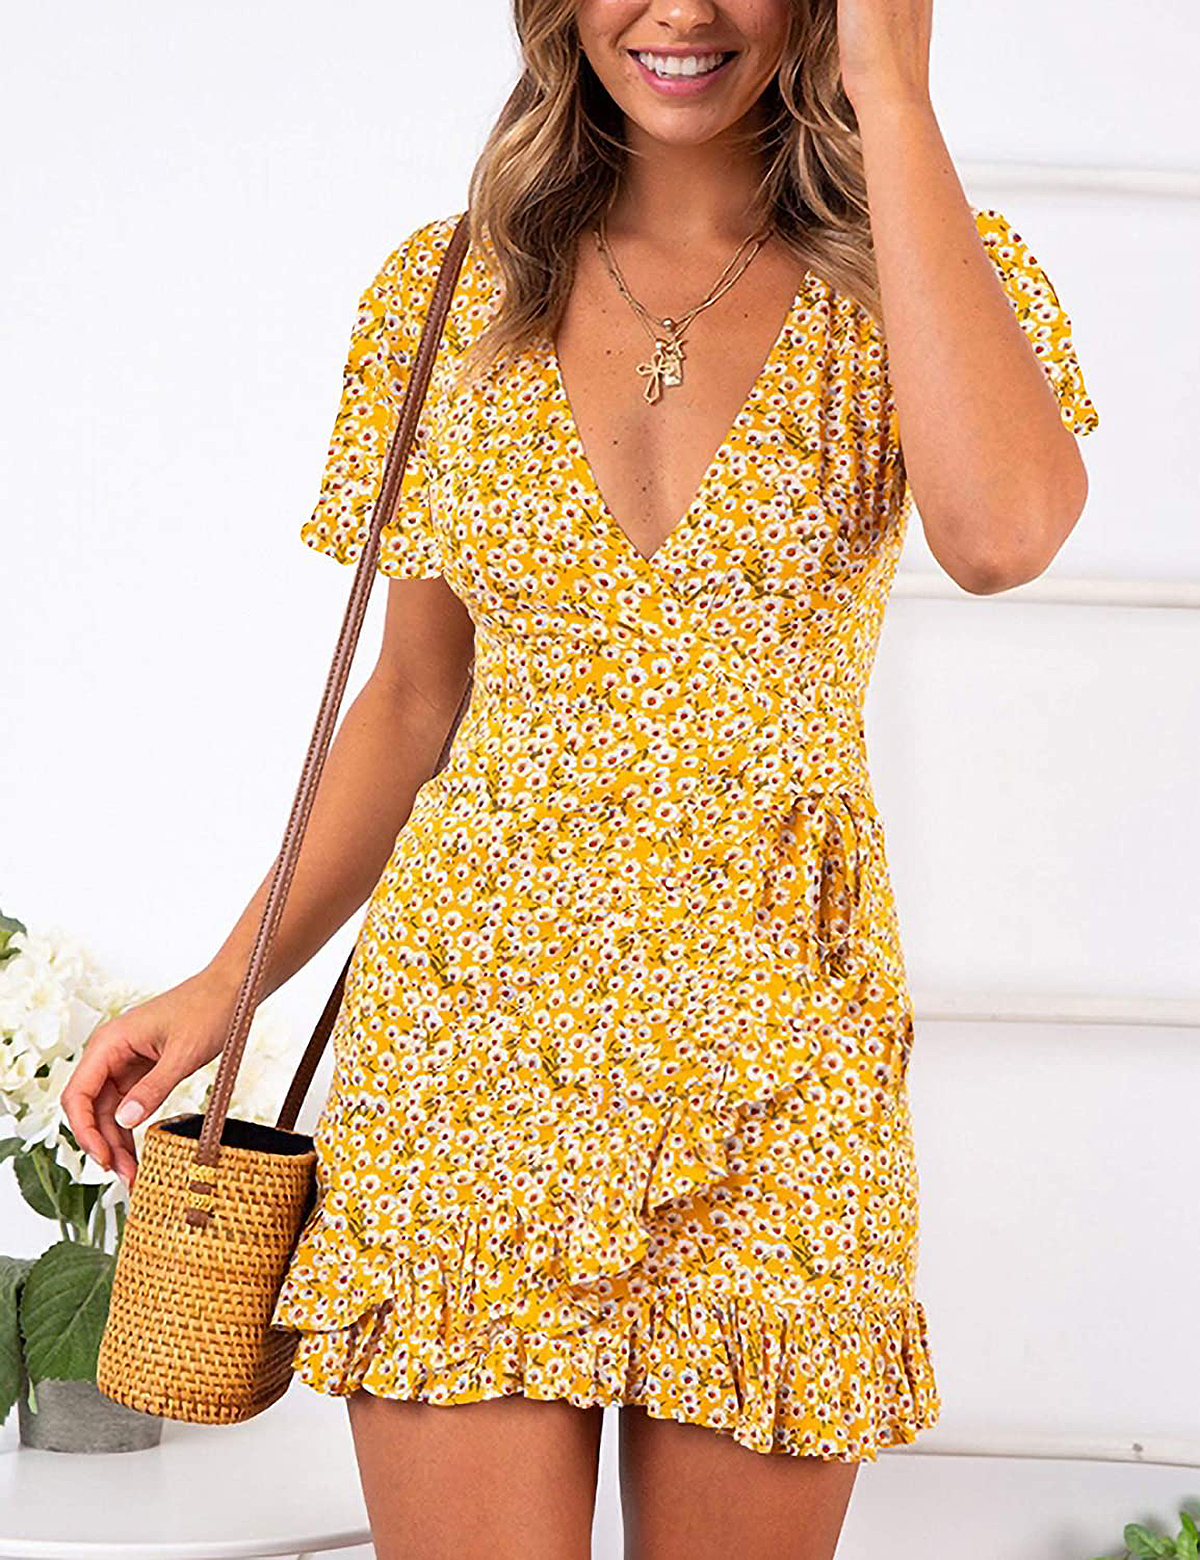 Relipop Summer Short Sleeve Print Dress